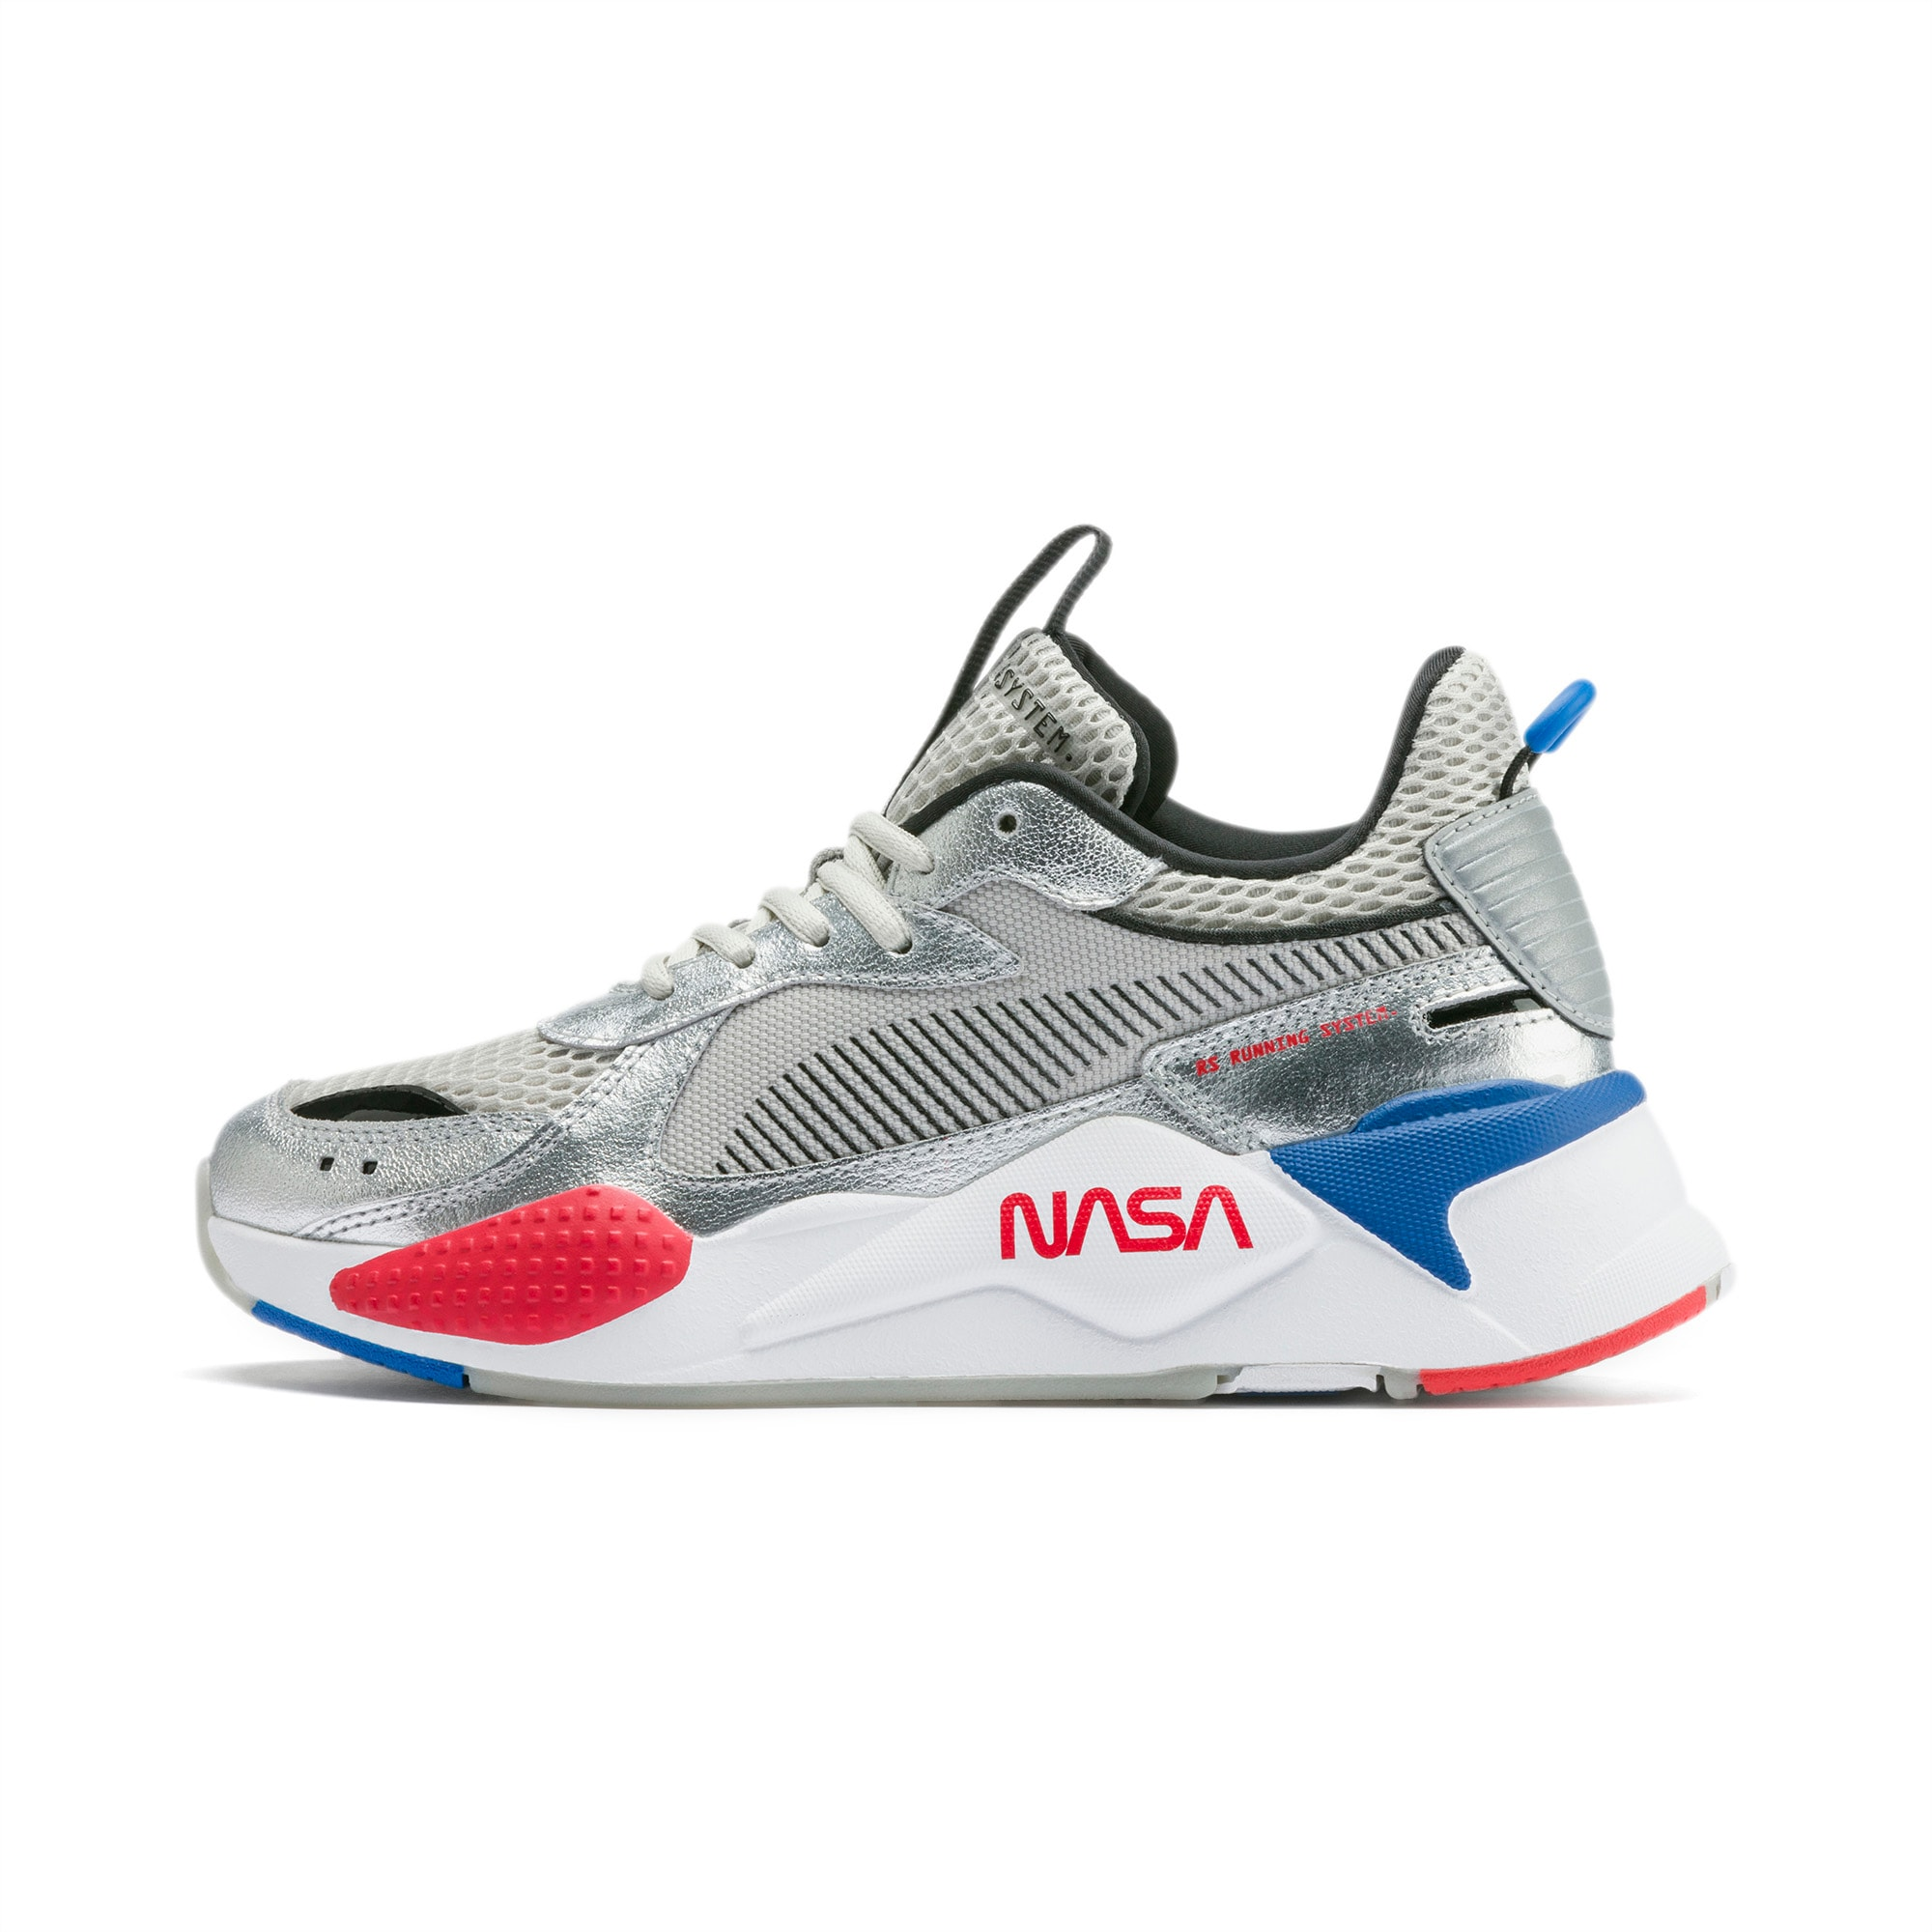 RS-X Space Agency Youth Trainers, Puma Silver-Gray Violet, large-SEA